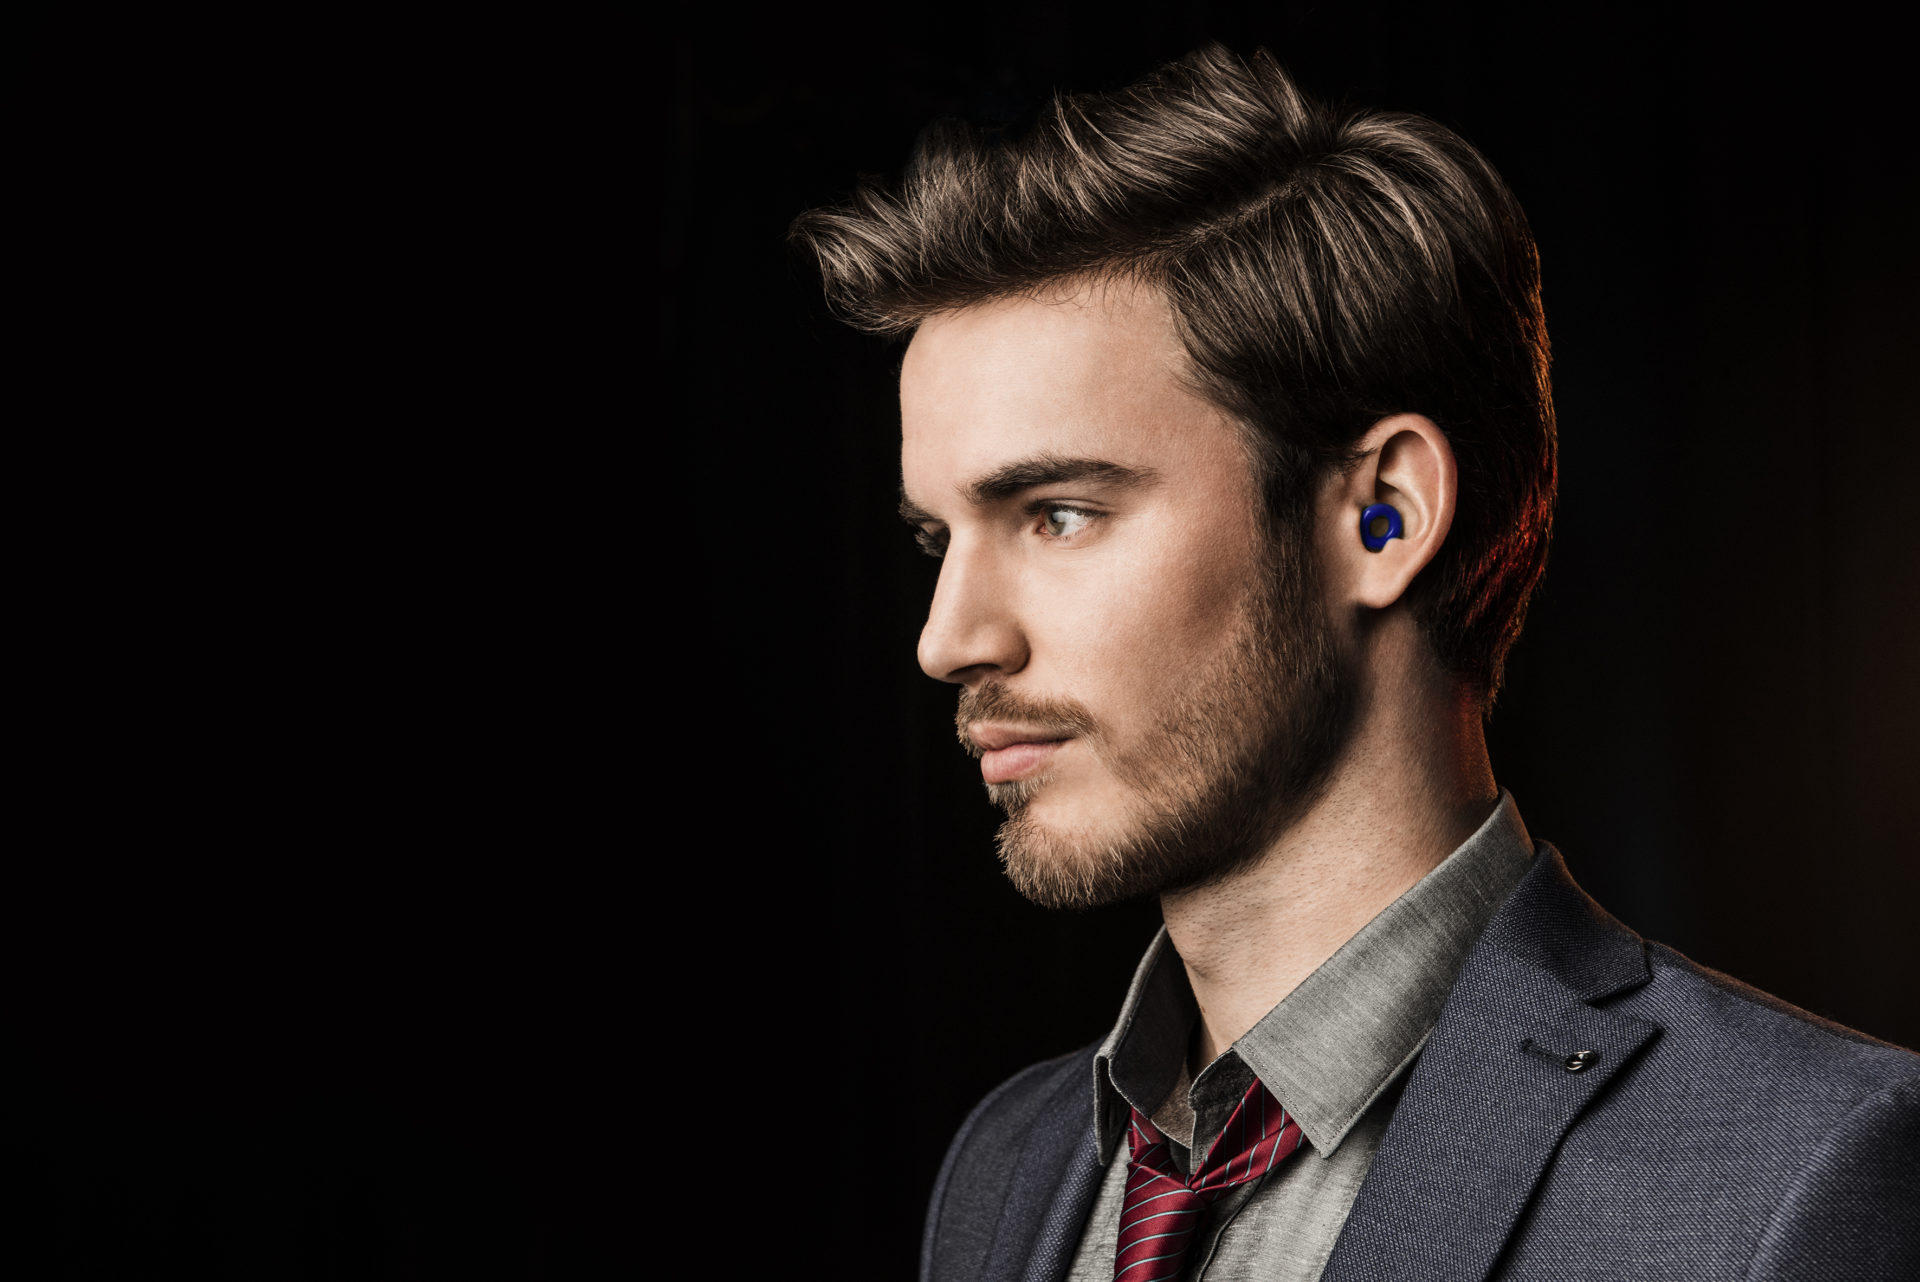 Maarten-Bodewes  Stephanie_600x600  Sverre_blue_600x600  Loop-red-in-ear  Loop-blue-in-ear